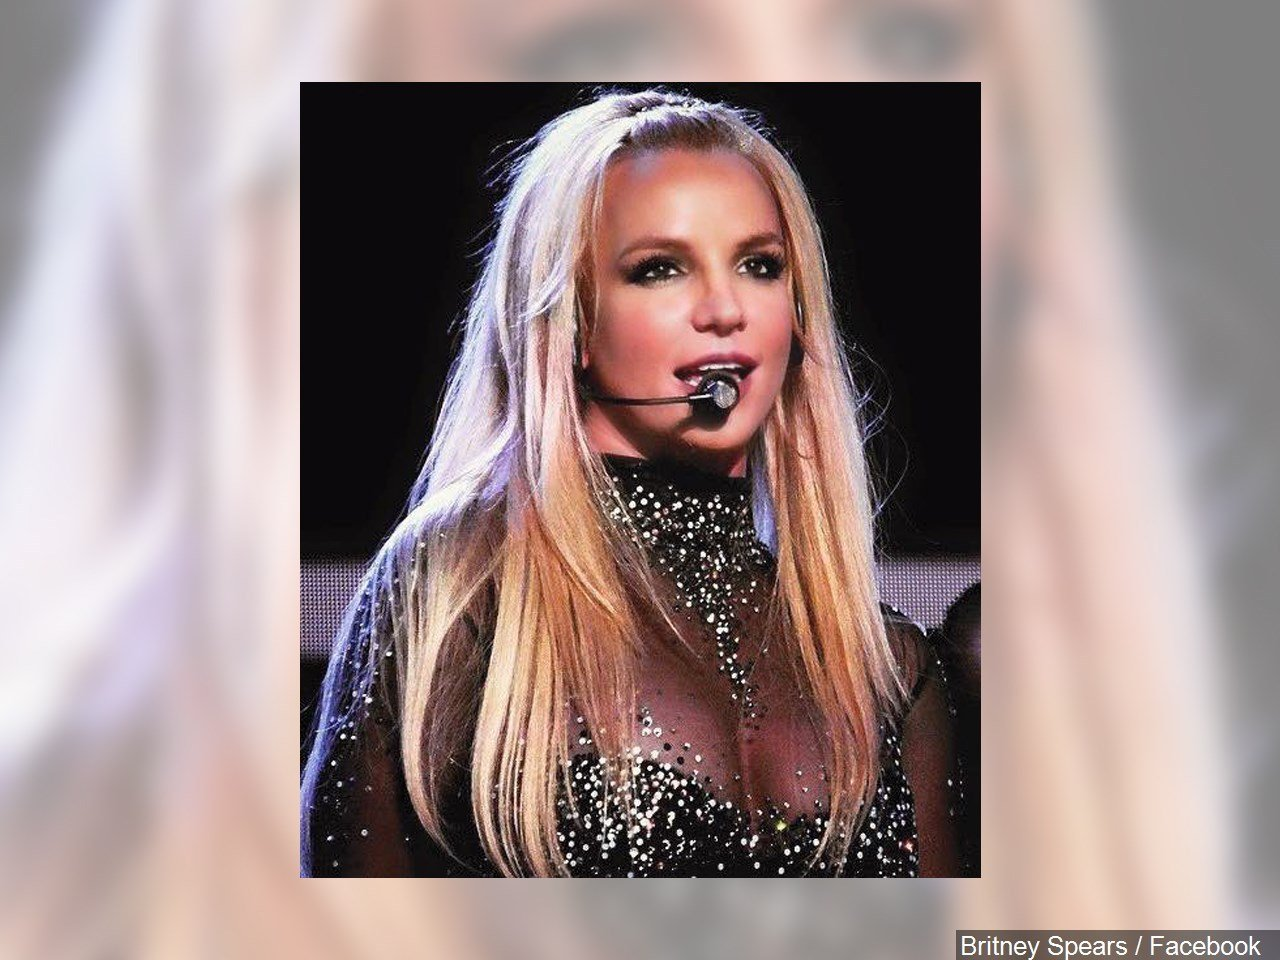 Terrified Britney Spears Amps Up Security After Crazed Fan Encounter